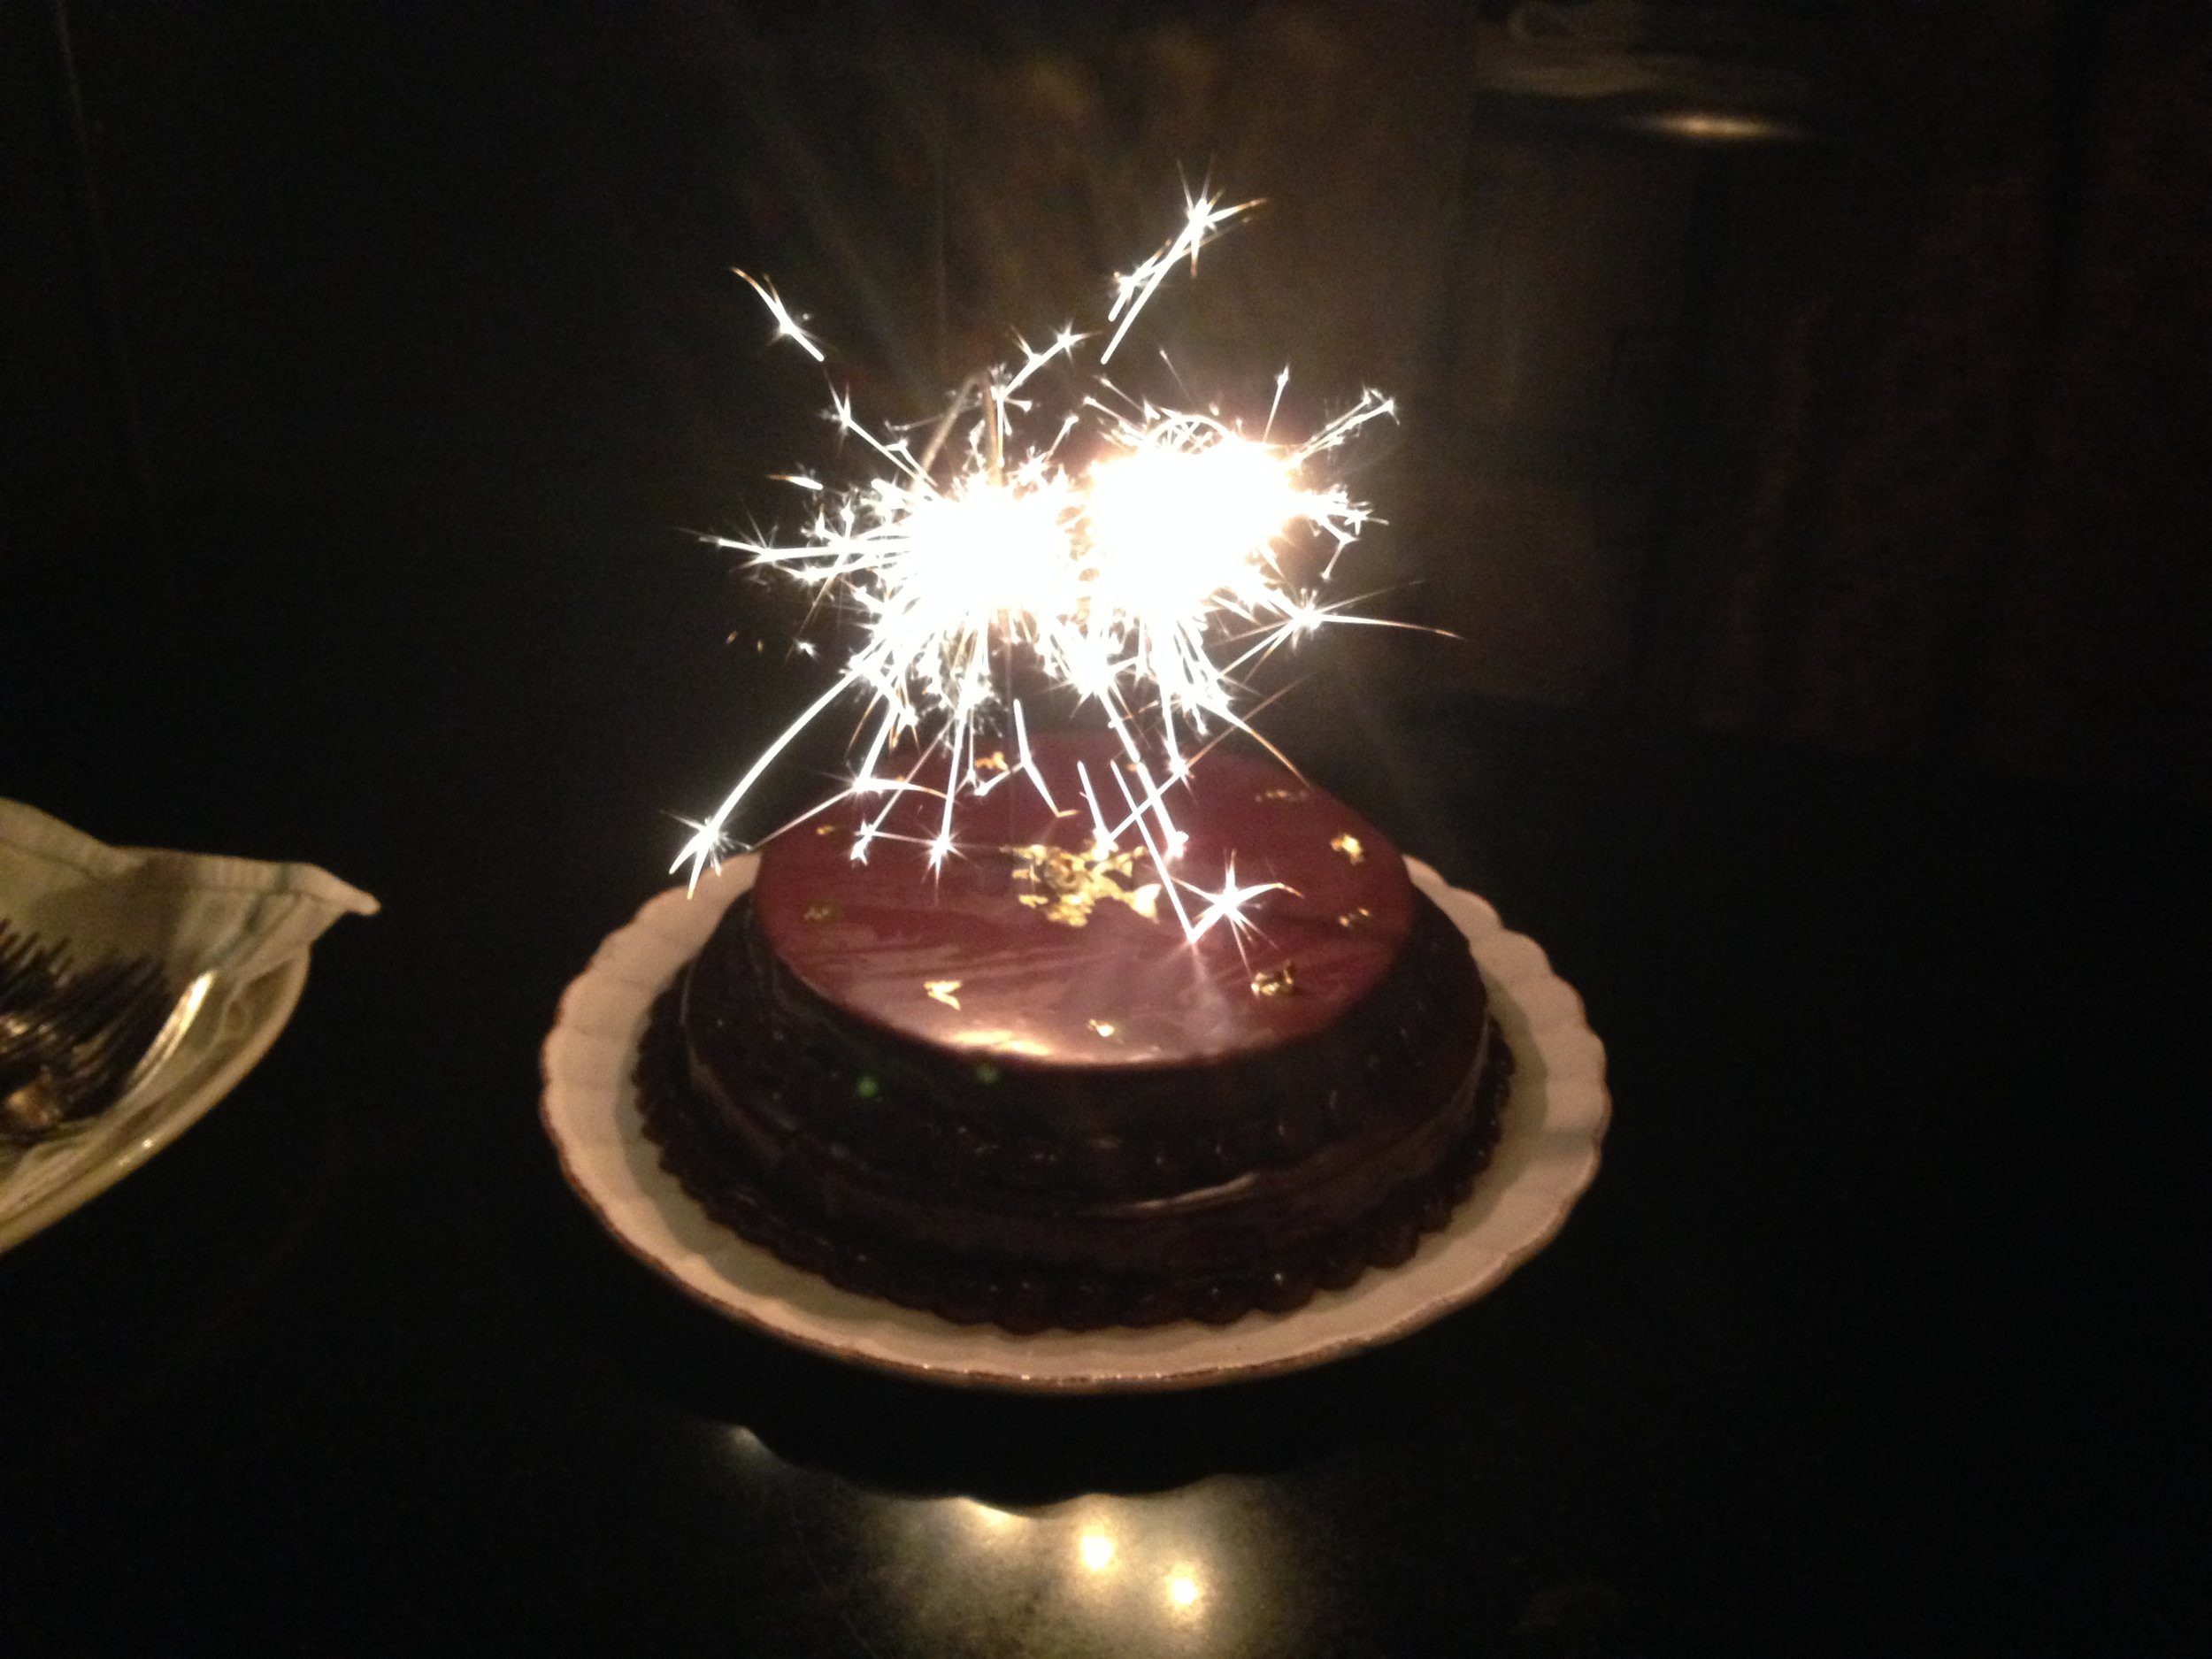 Sparklers ontop of cake to celebrate.